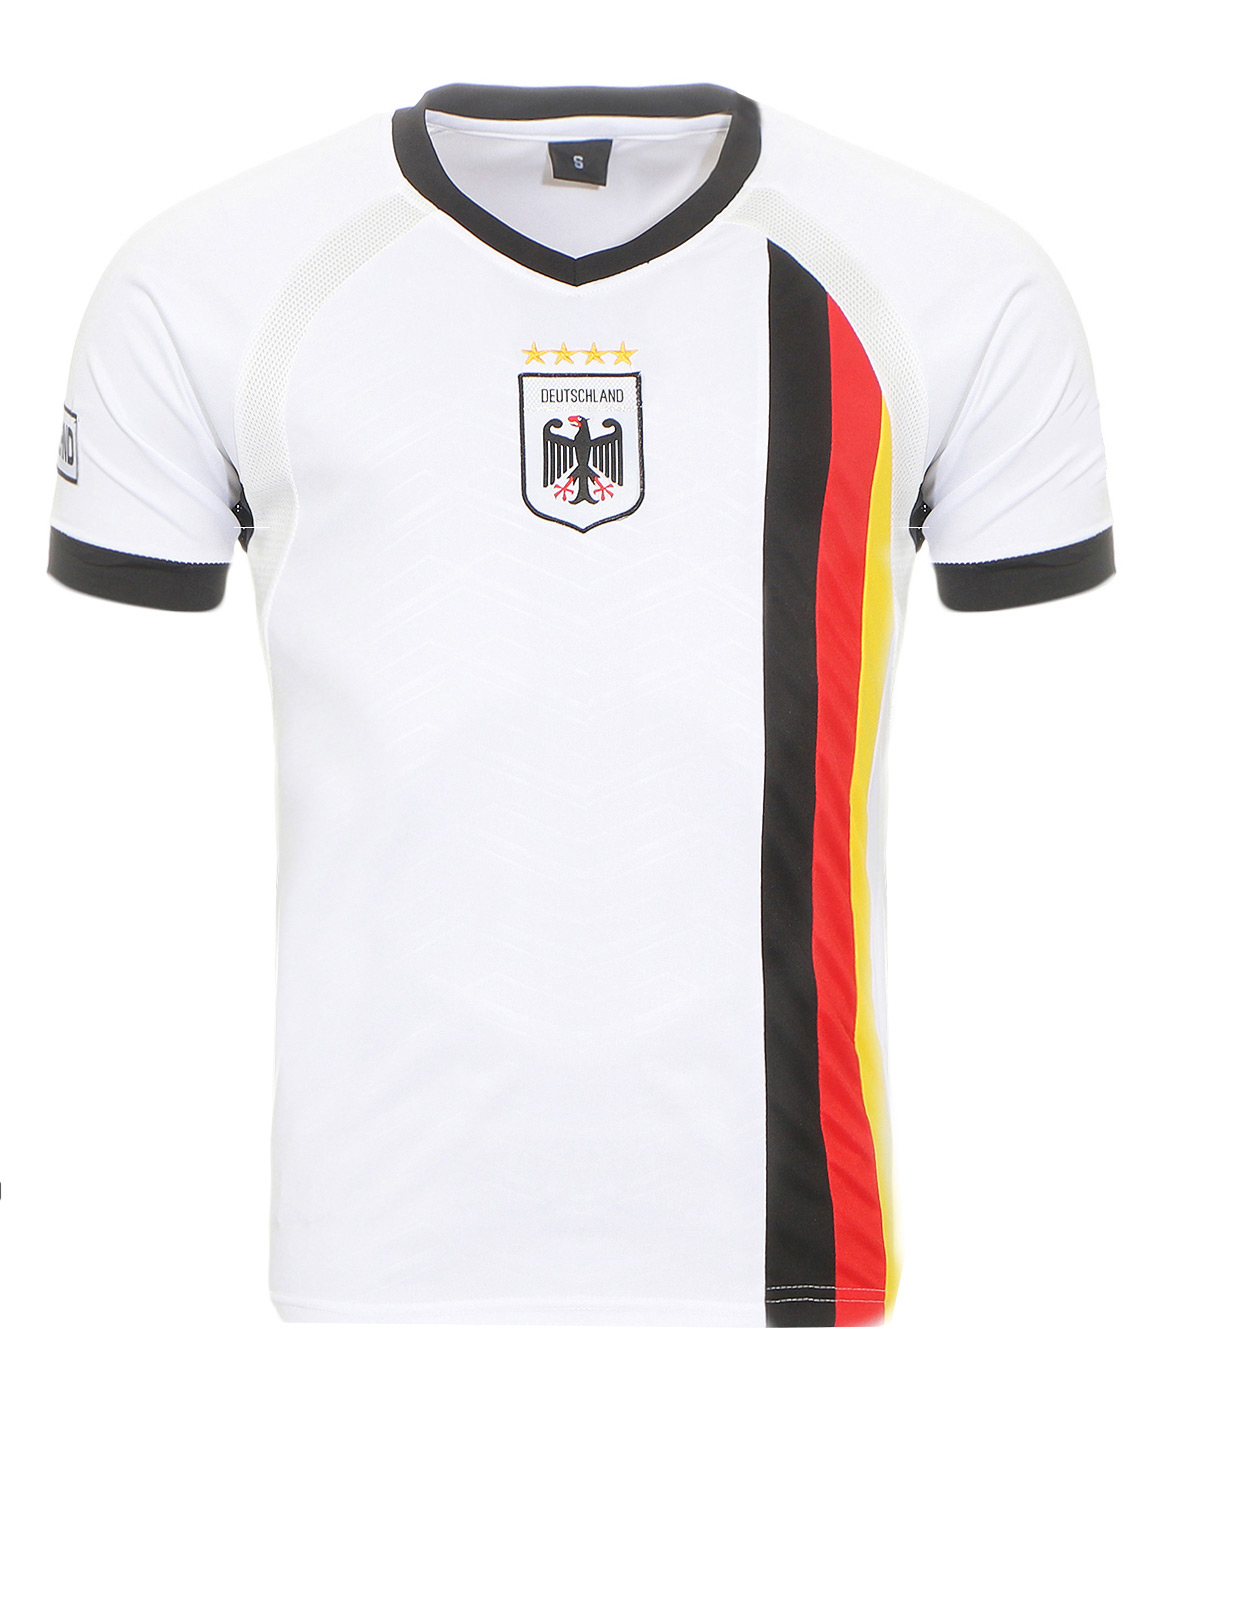 fu ball trikot herren damen deutschland wm em fanshirt sporttrikot freizeit ebay. Black Bedroom Furniture Sets. Home Design Ideas